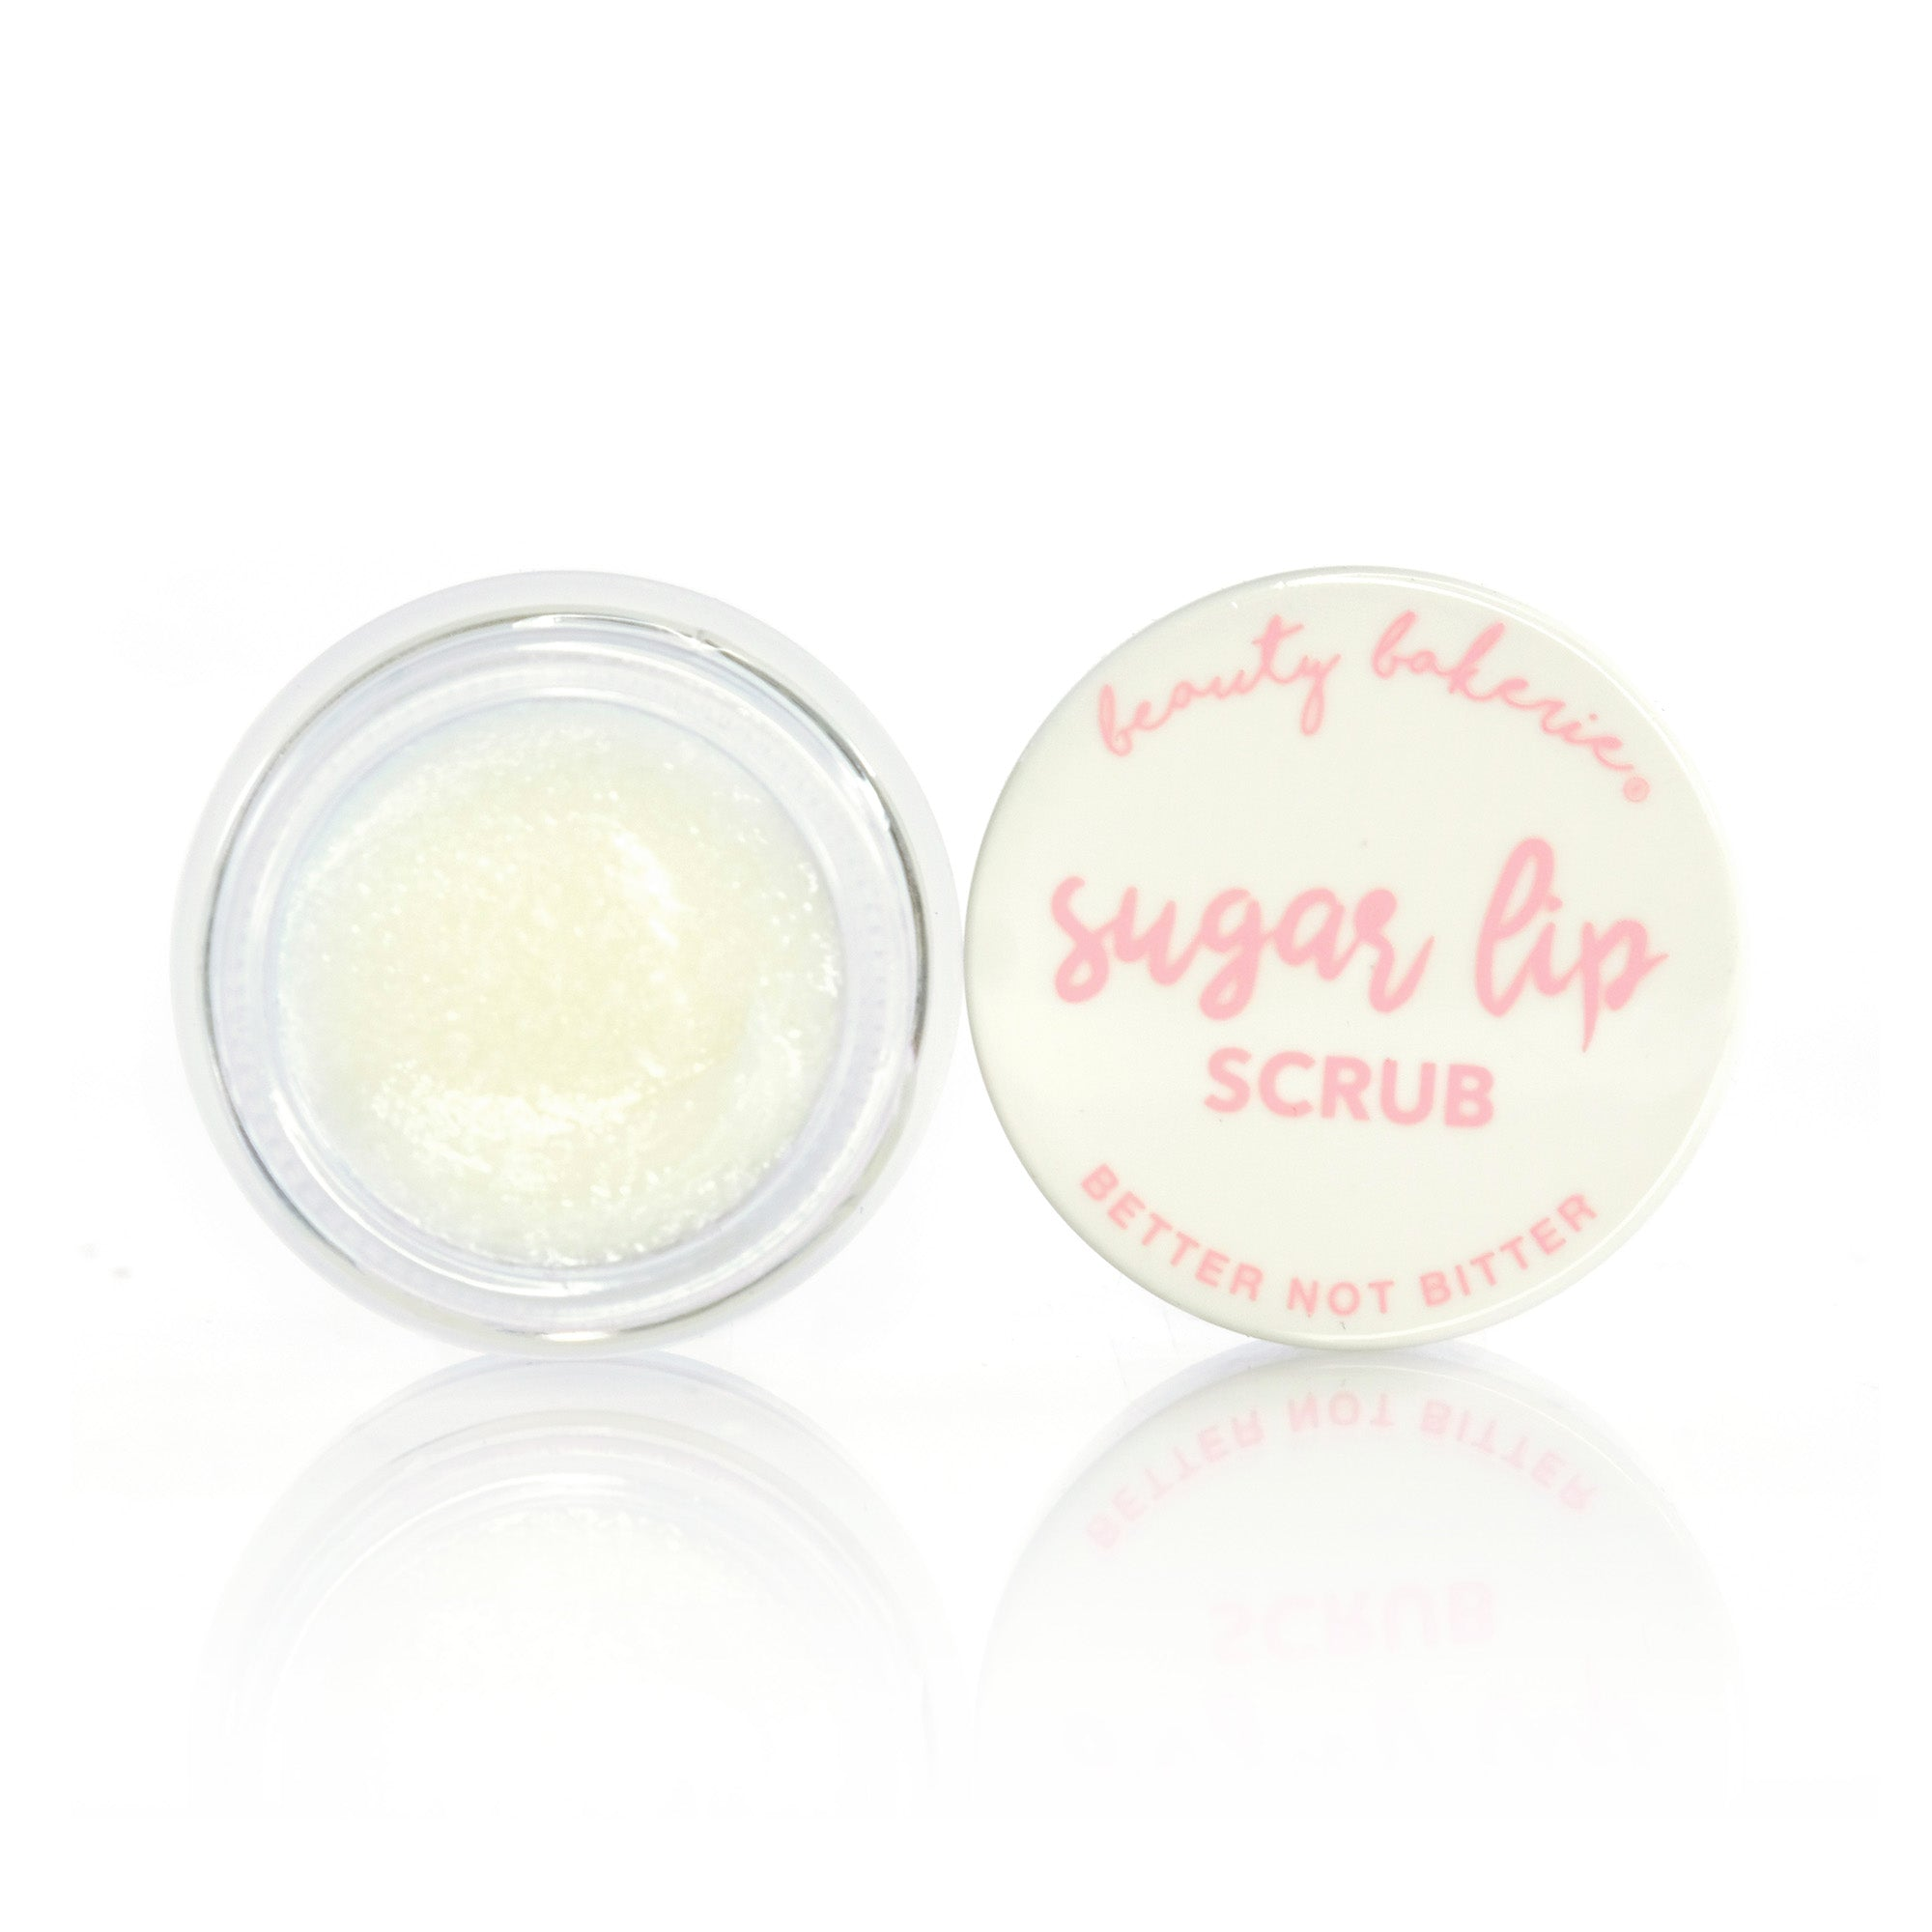 Sugar Lip Scrub - Peppermint